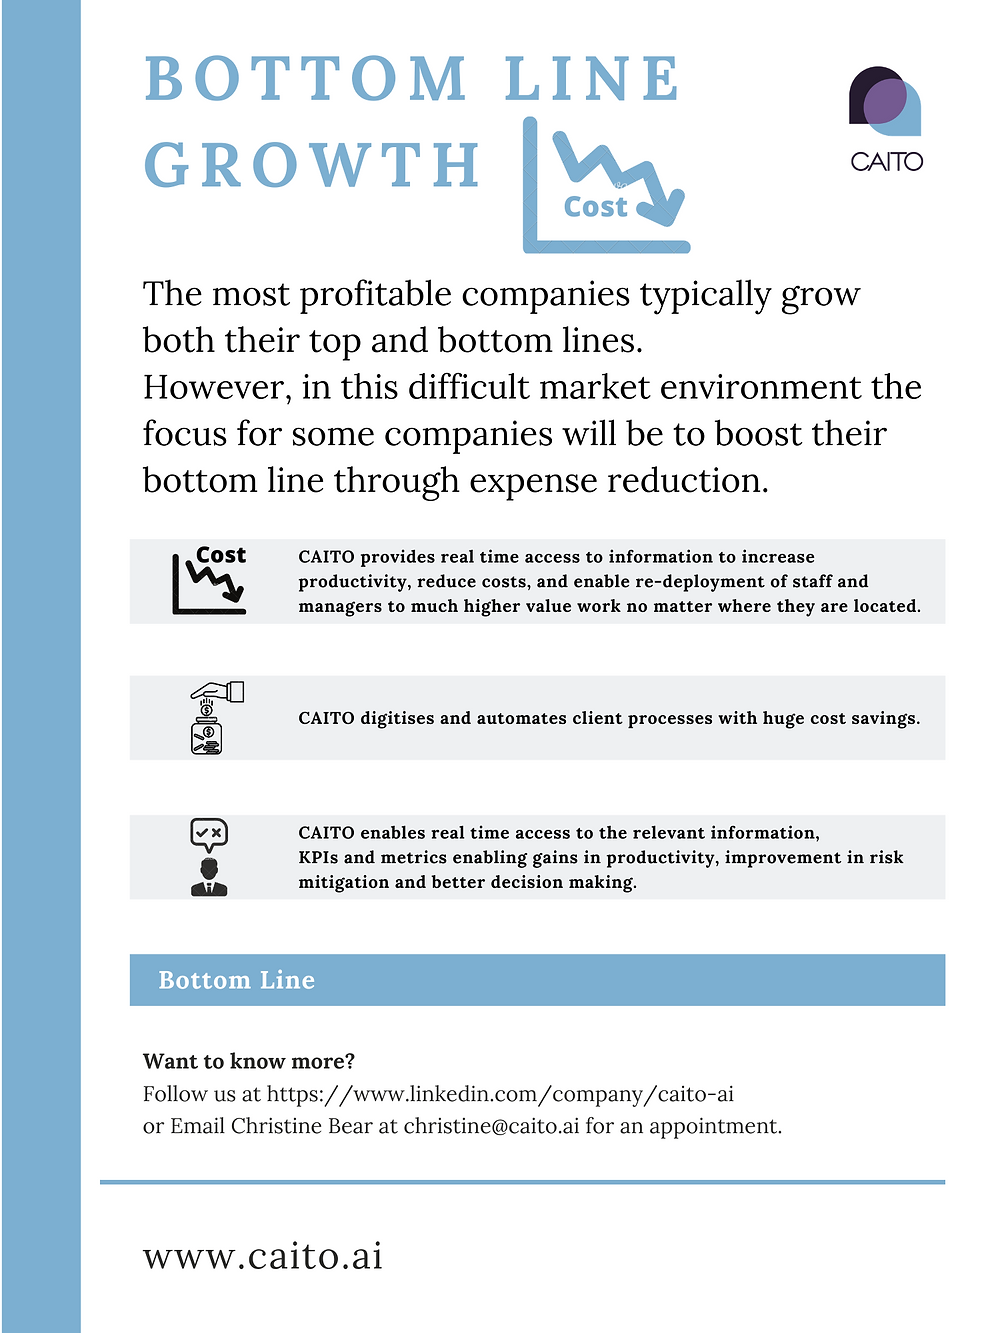 The most profitable companies typically grow both their top and bottom lines. However, in this difficult market environment the focus for some companies will be to boost their bottom line through expense reduction.